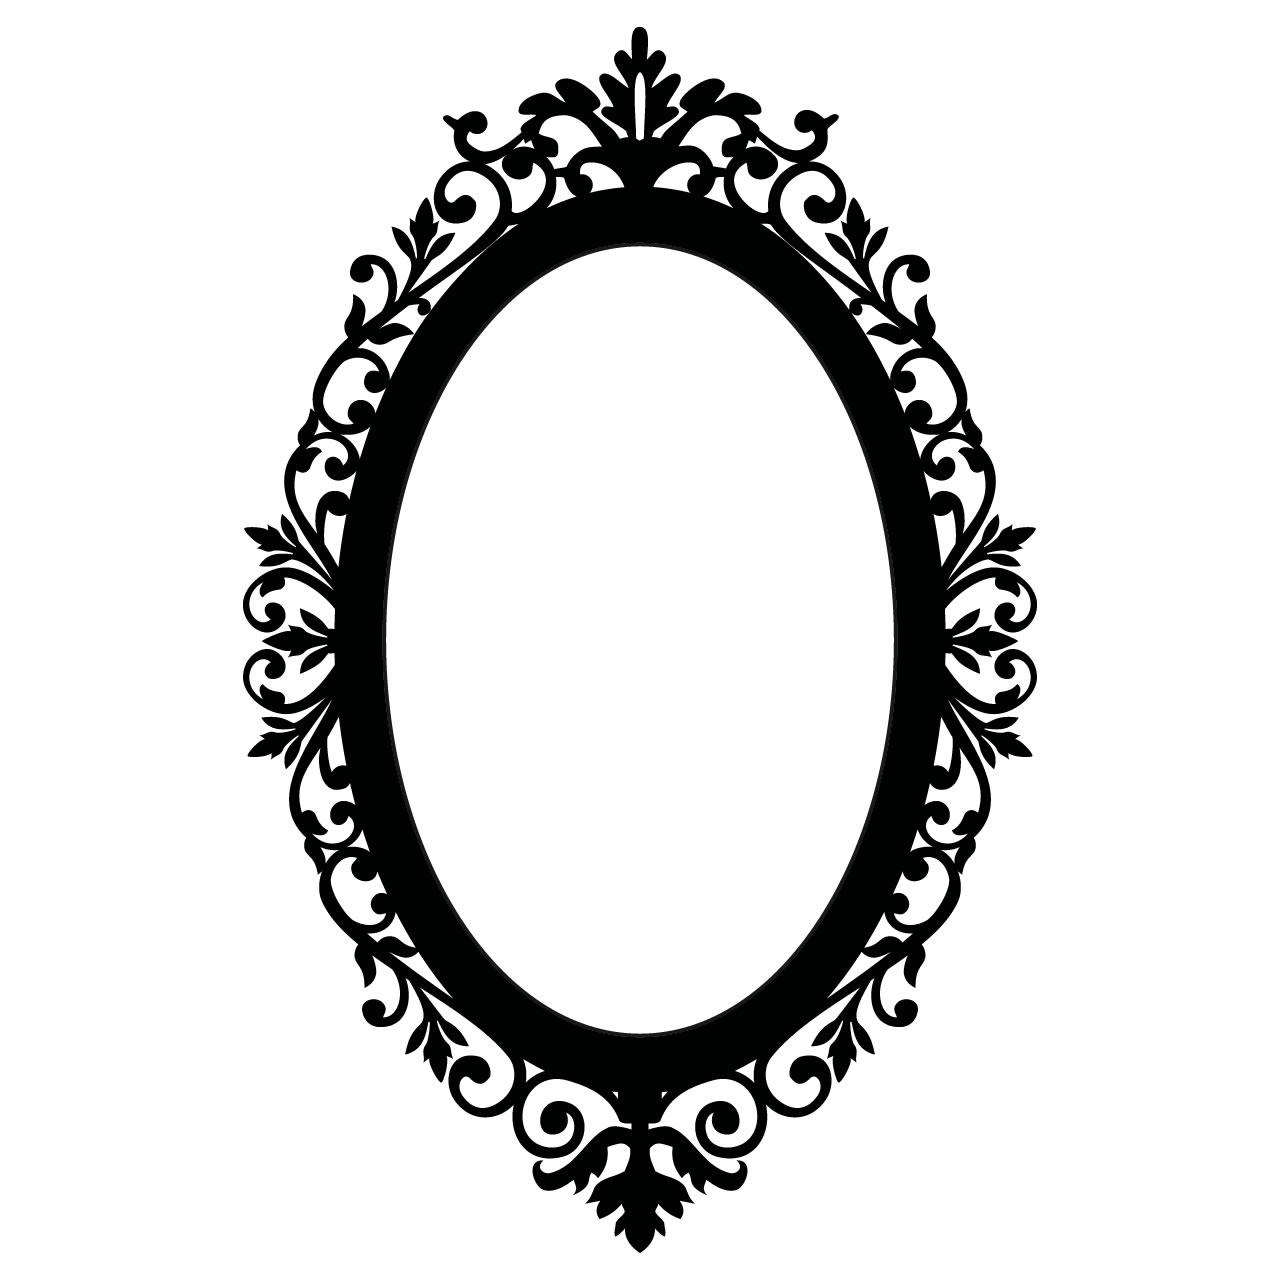 Frame Silhouette Clipart Panda Free Clipart Images 6ZW2GW